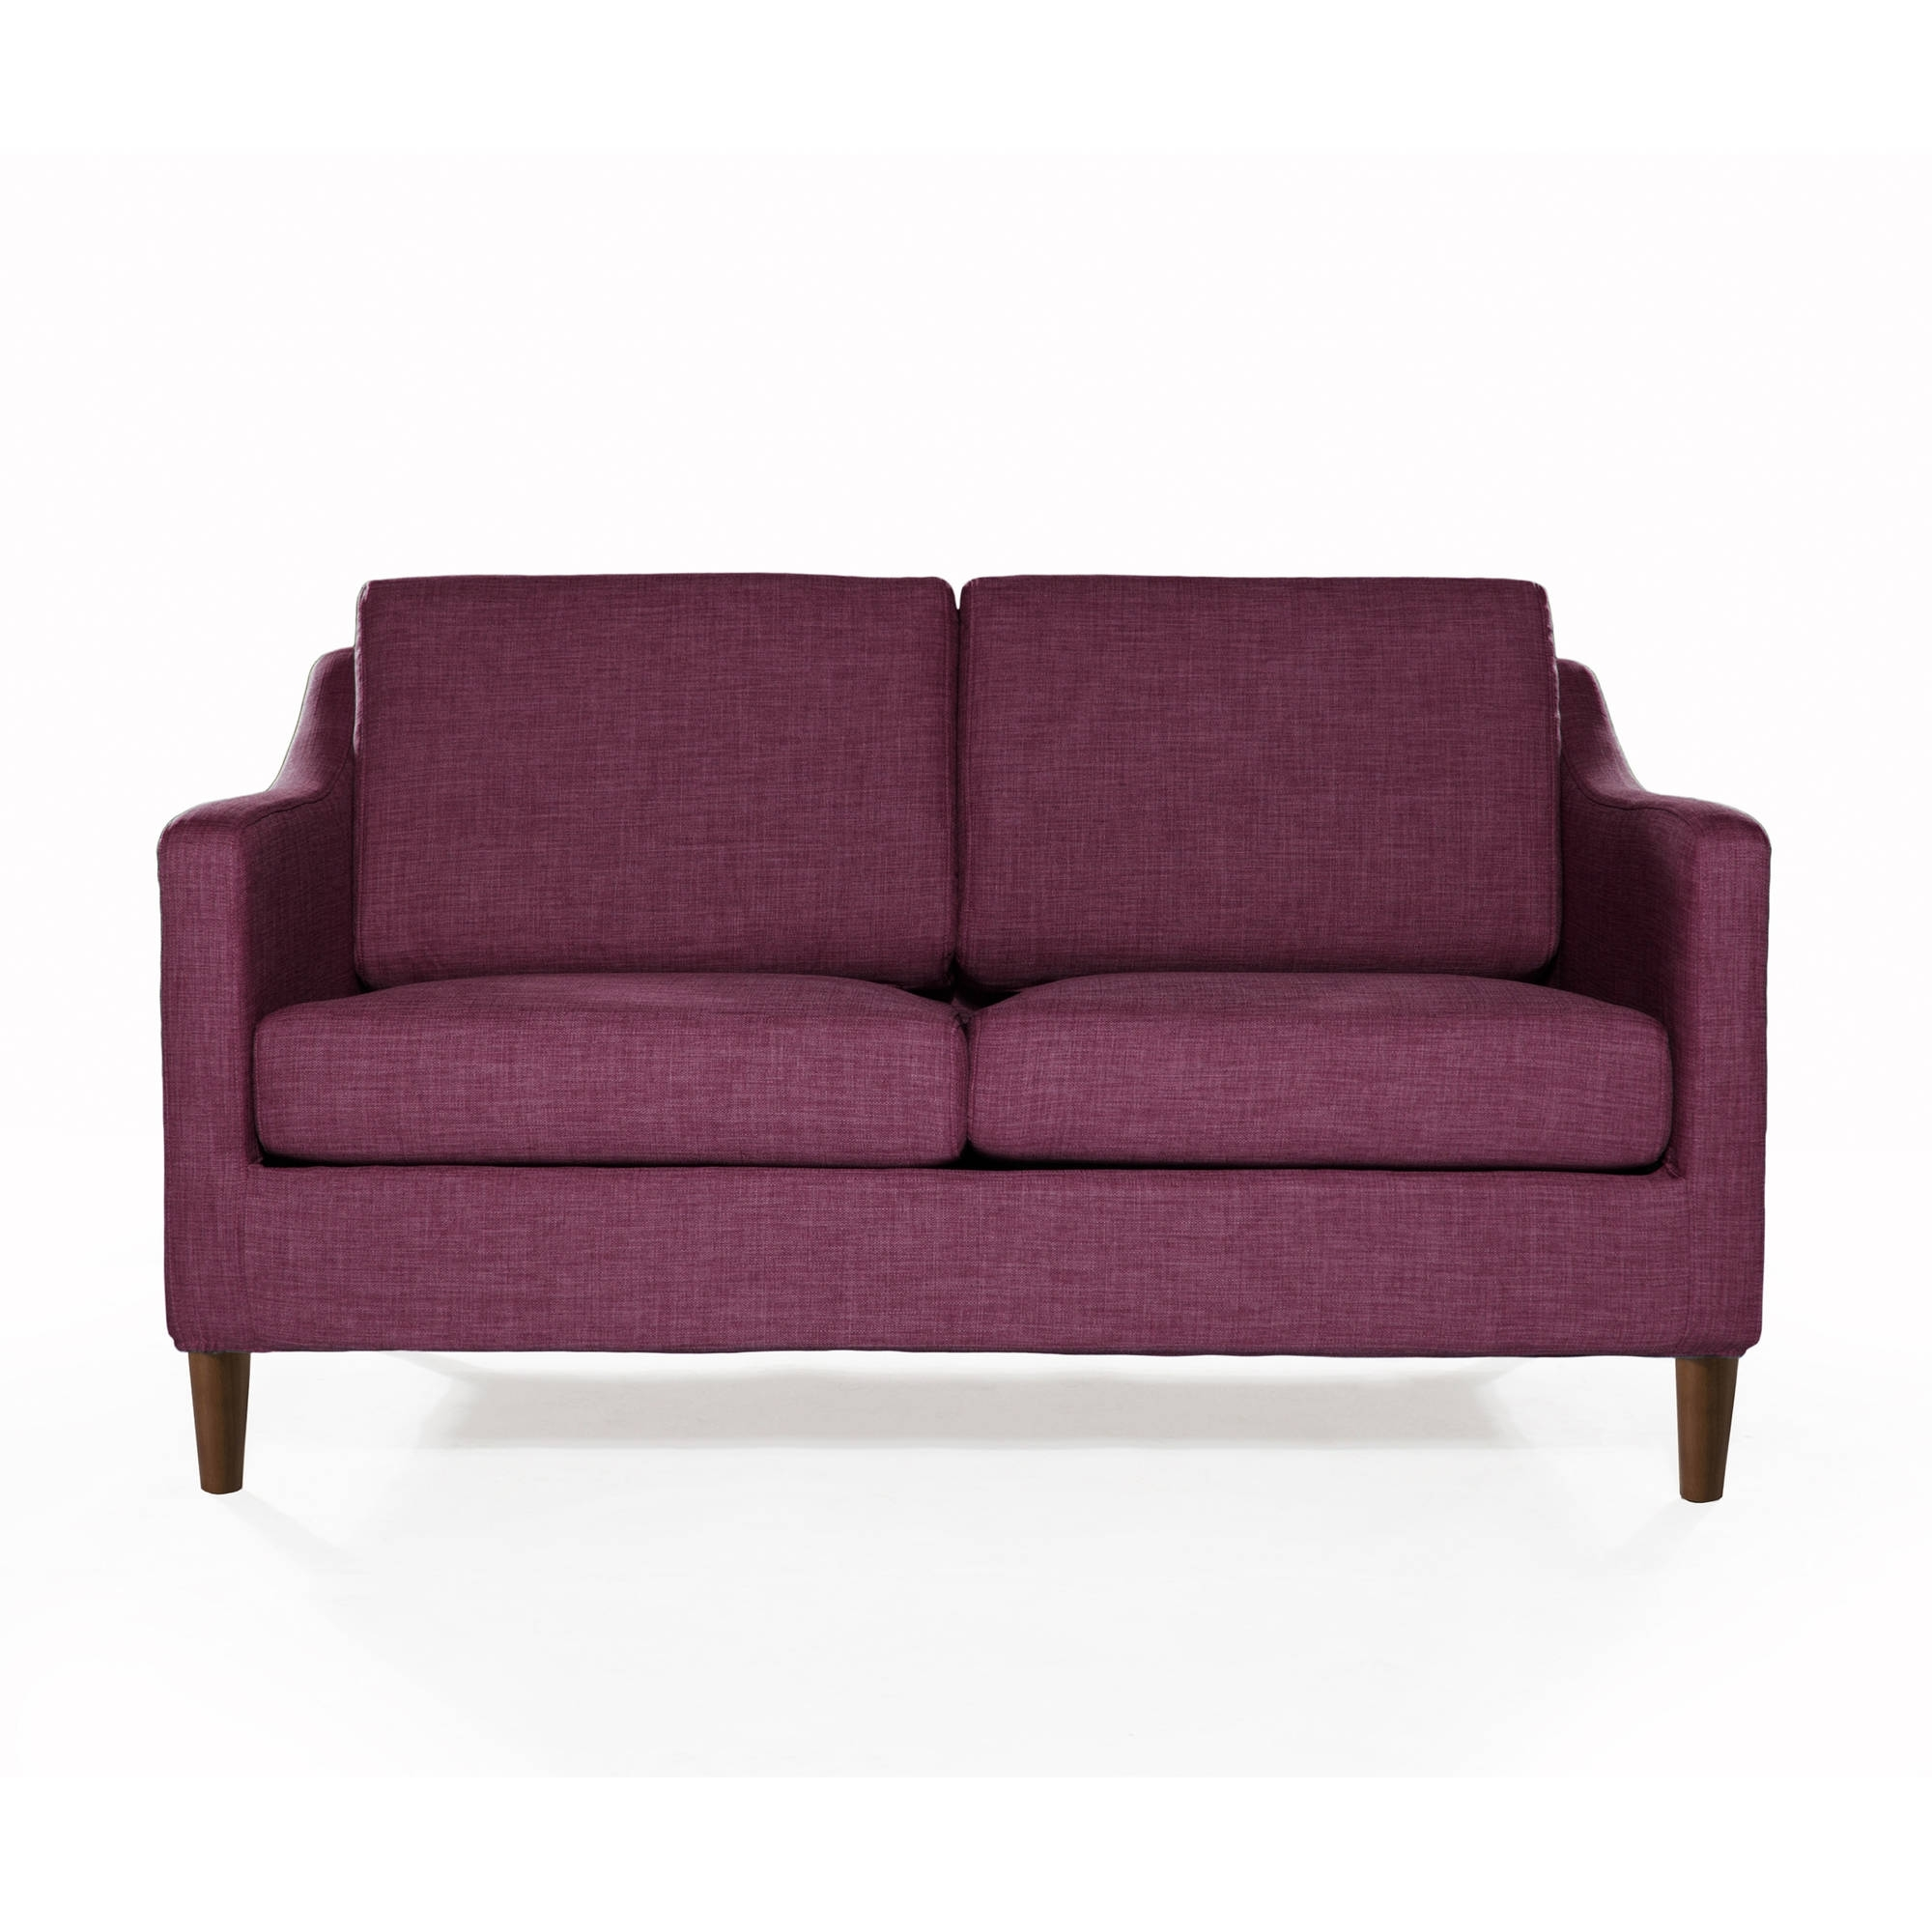 Sectional Sofas At Walmart Pertaining To Most Recent Sectional Sofas – Walmart (View 2 of 15)